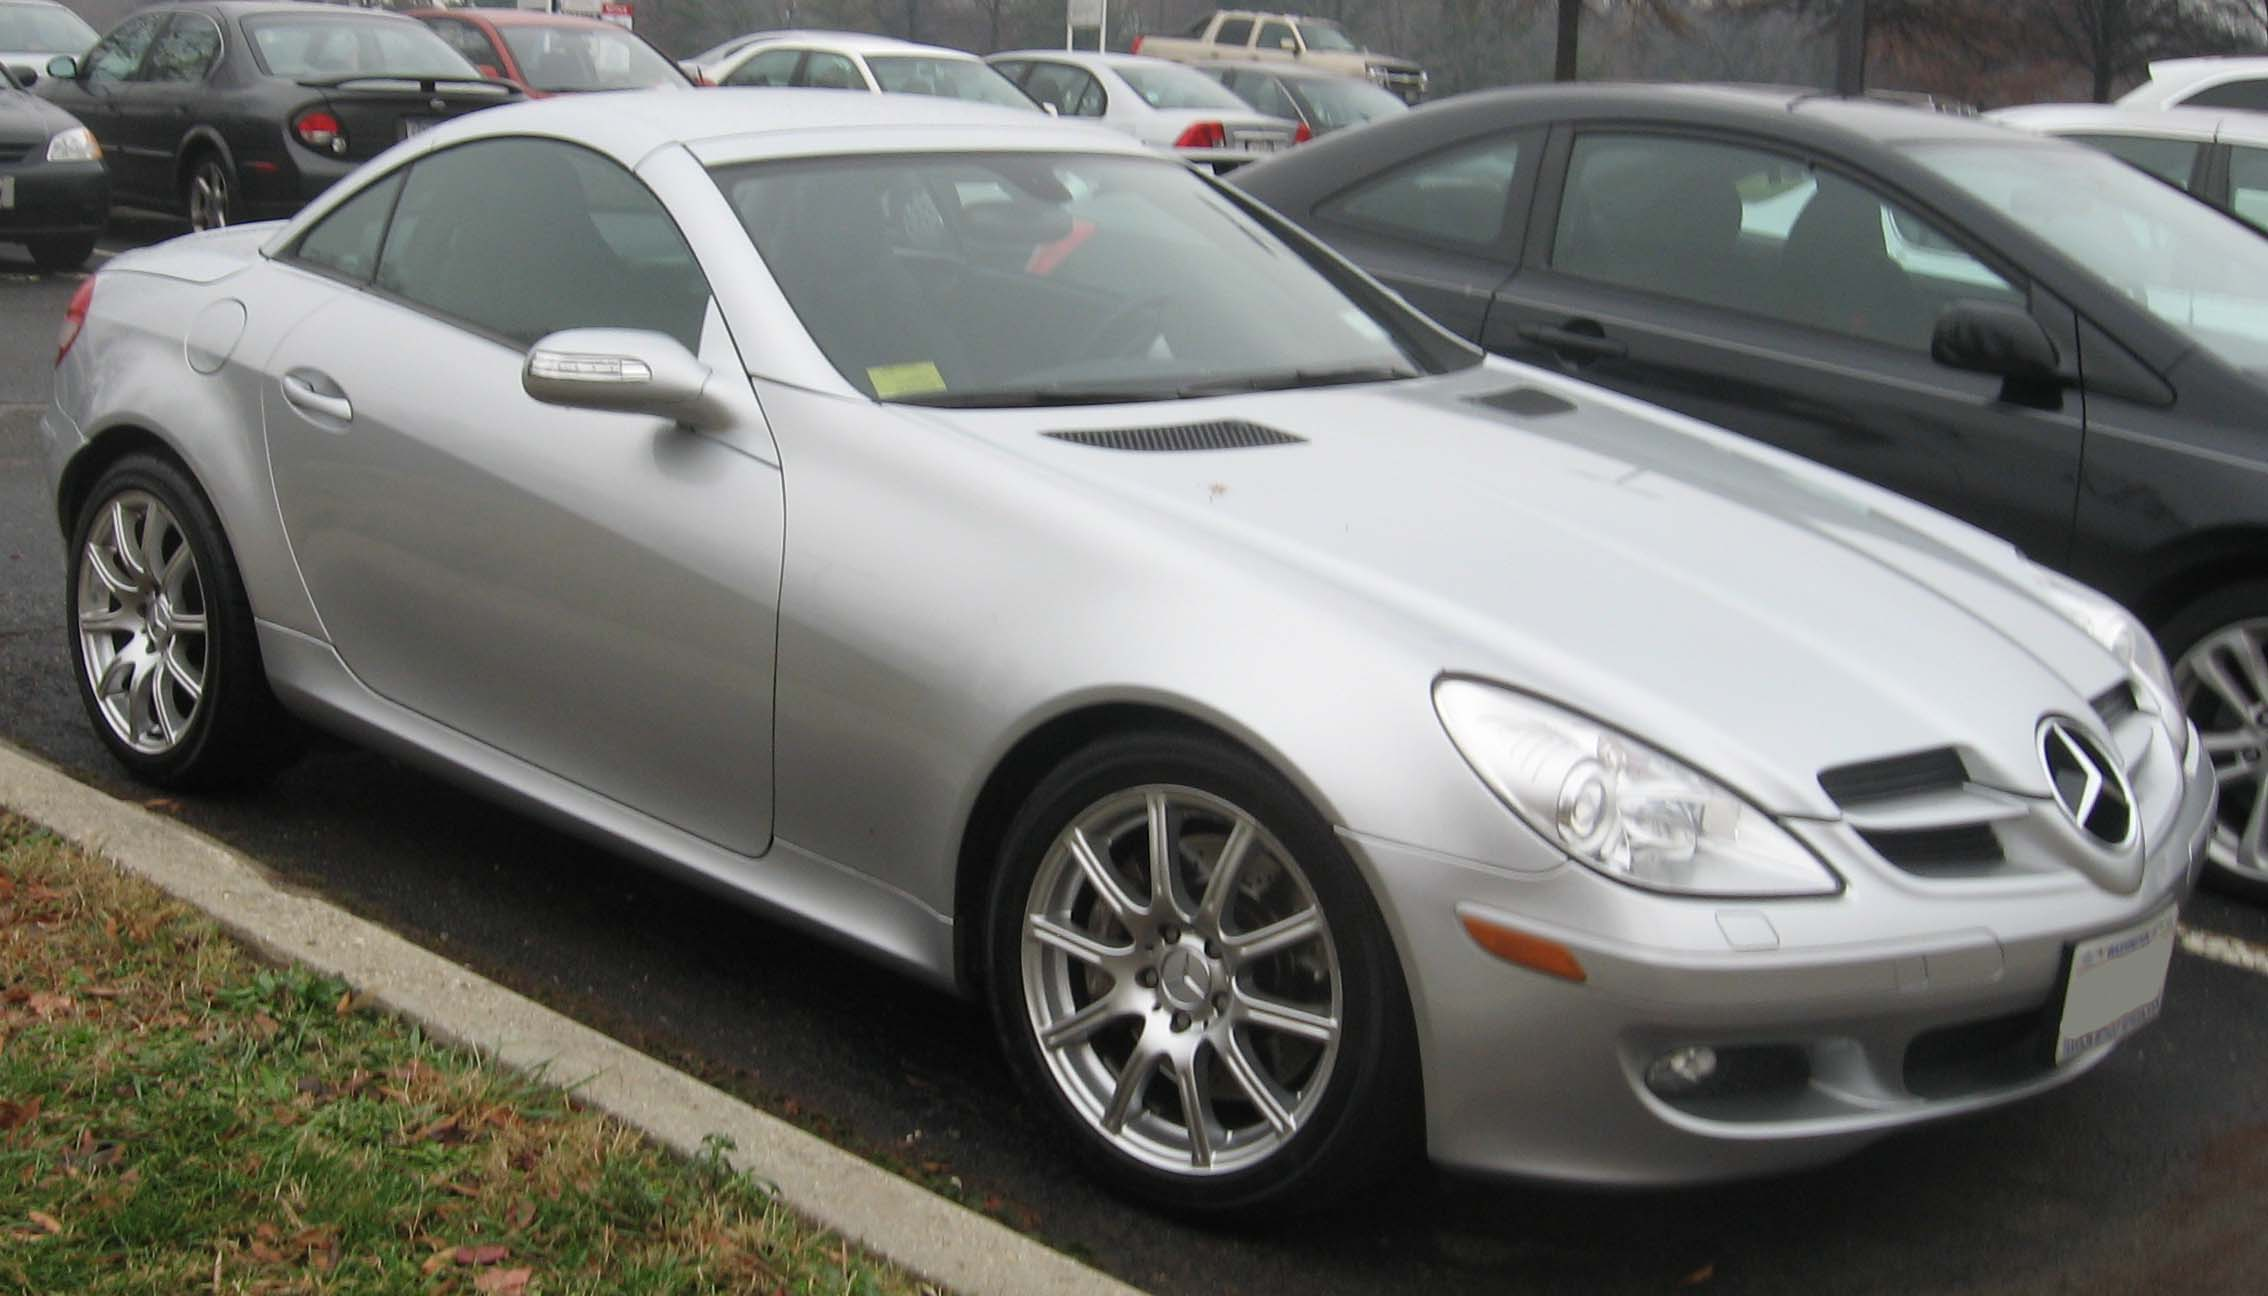 new top car launches info with wallpapers mercedes benz slk350. Black Bedroom Furniture Sets. Home Design Ideas